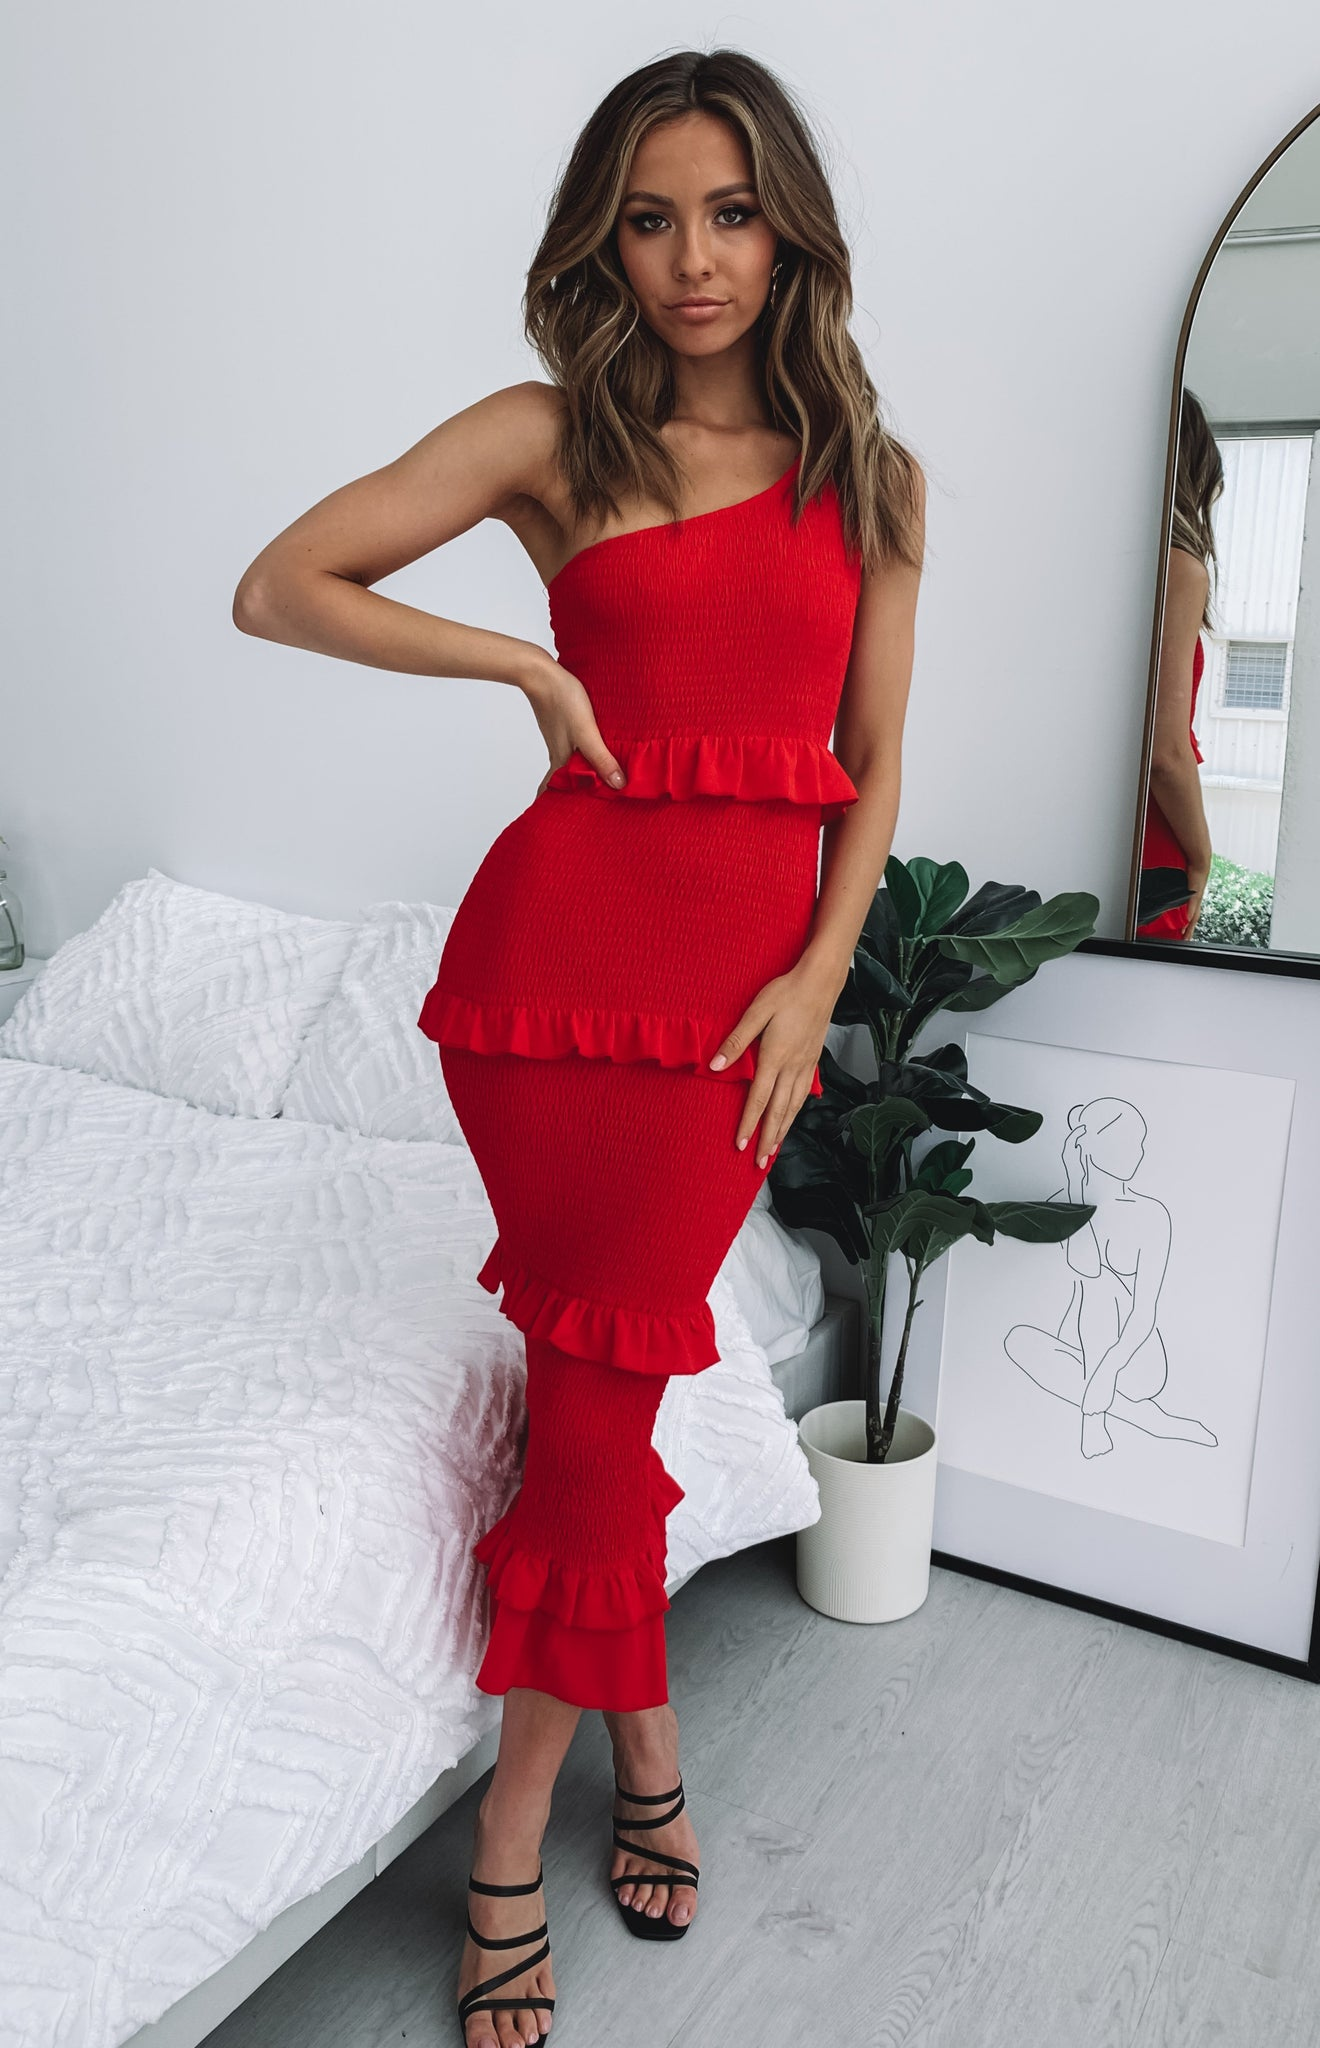 https://files.beginningboutique.com.au/Augustine+Shirred+Midi+Dress+red.mp4